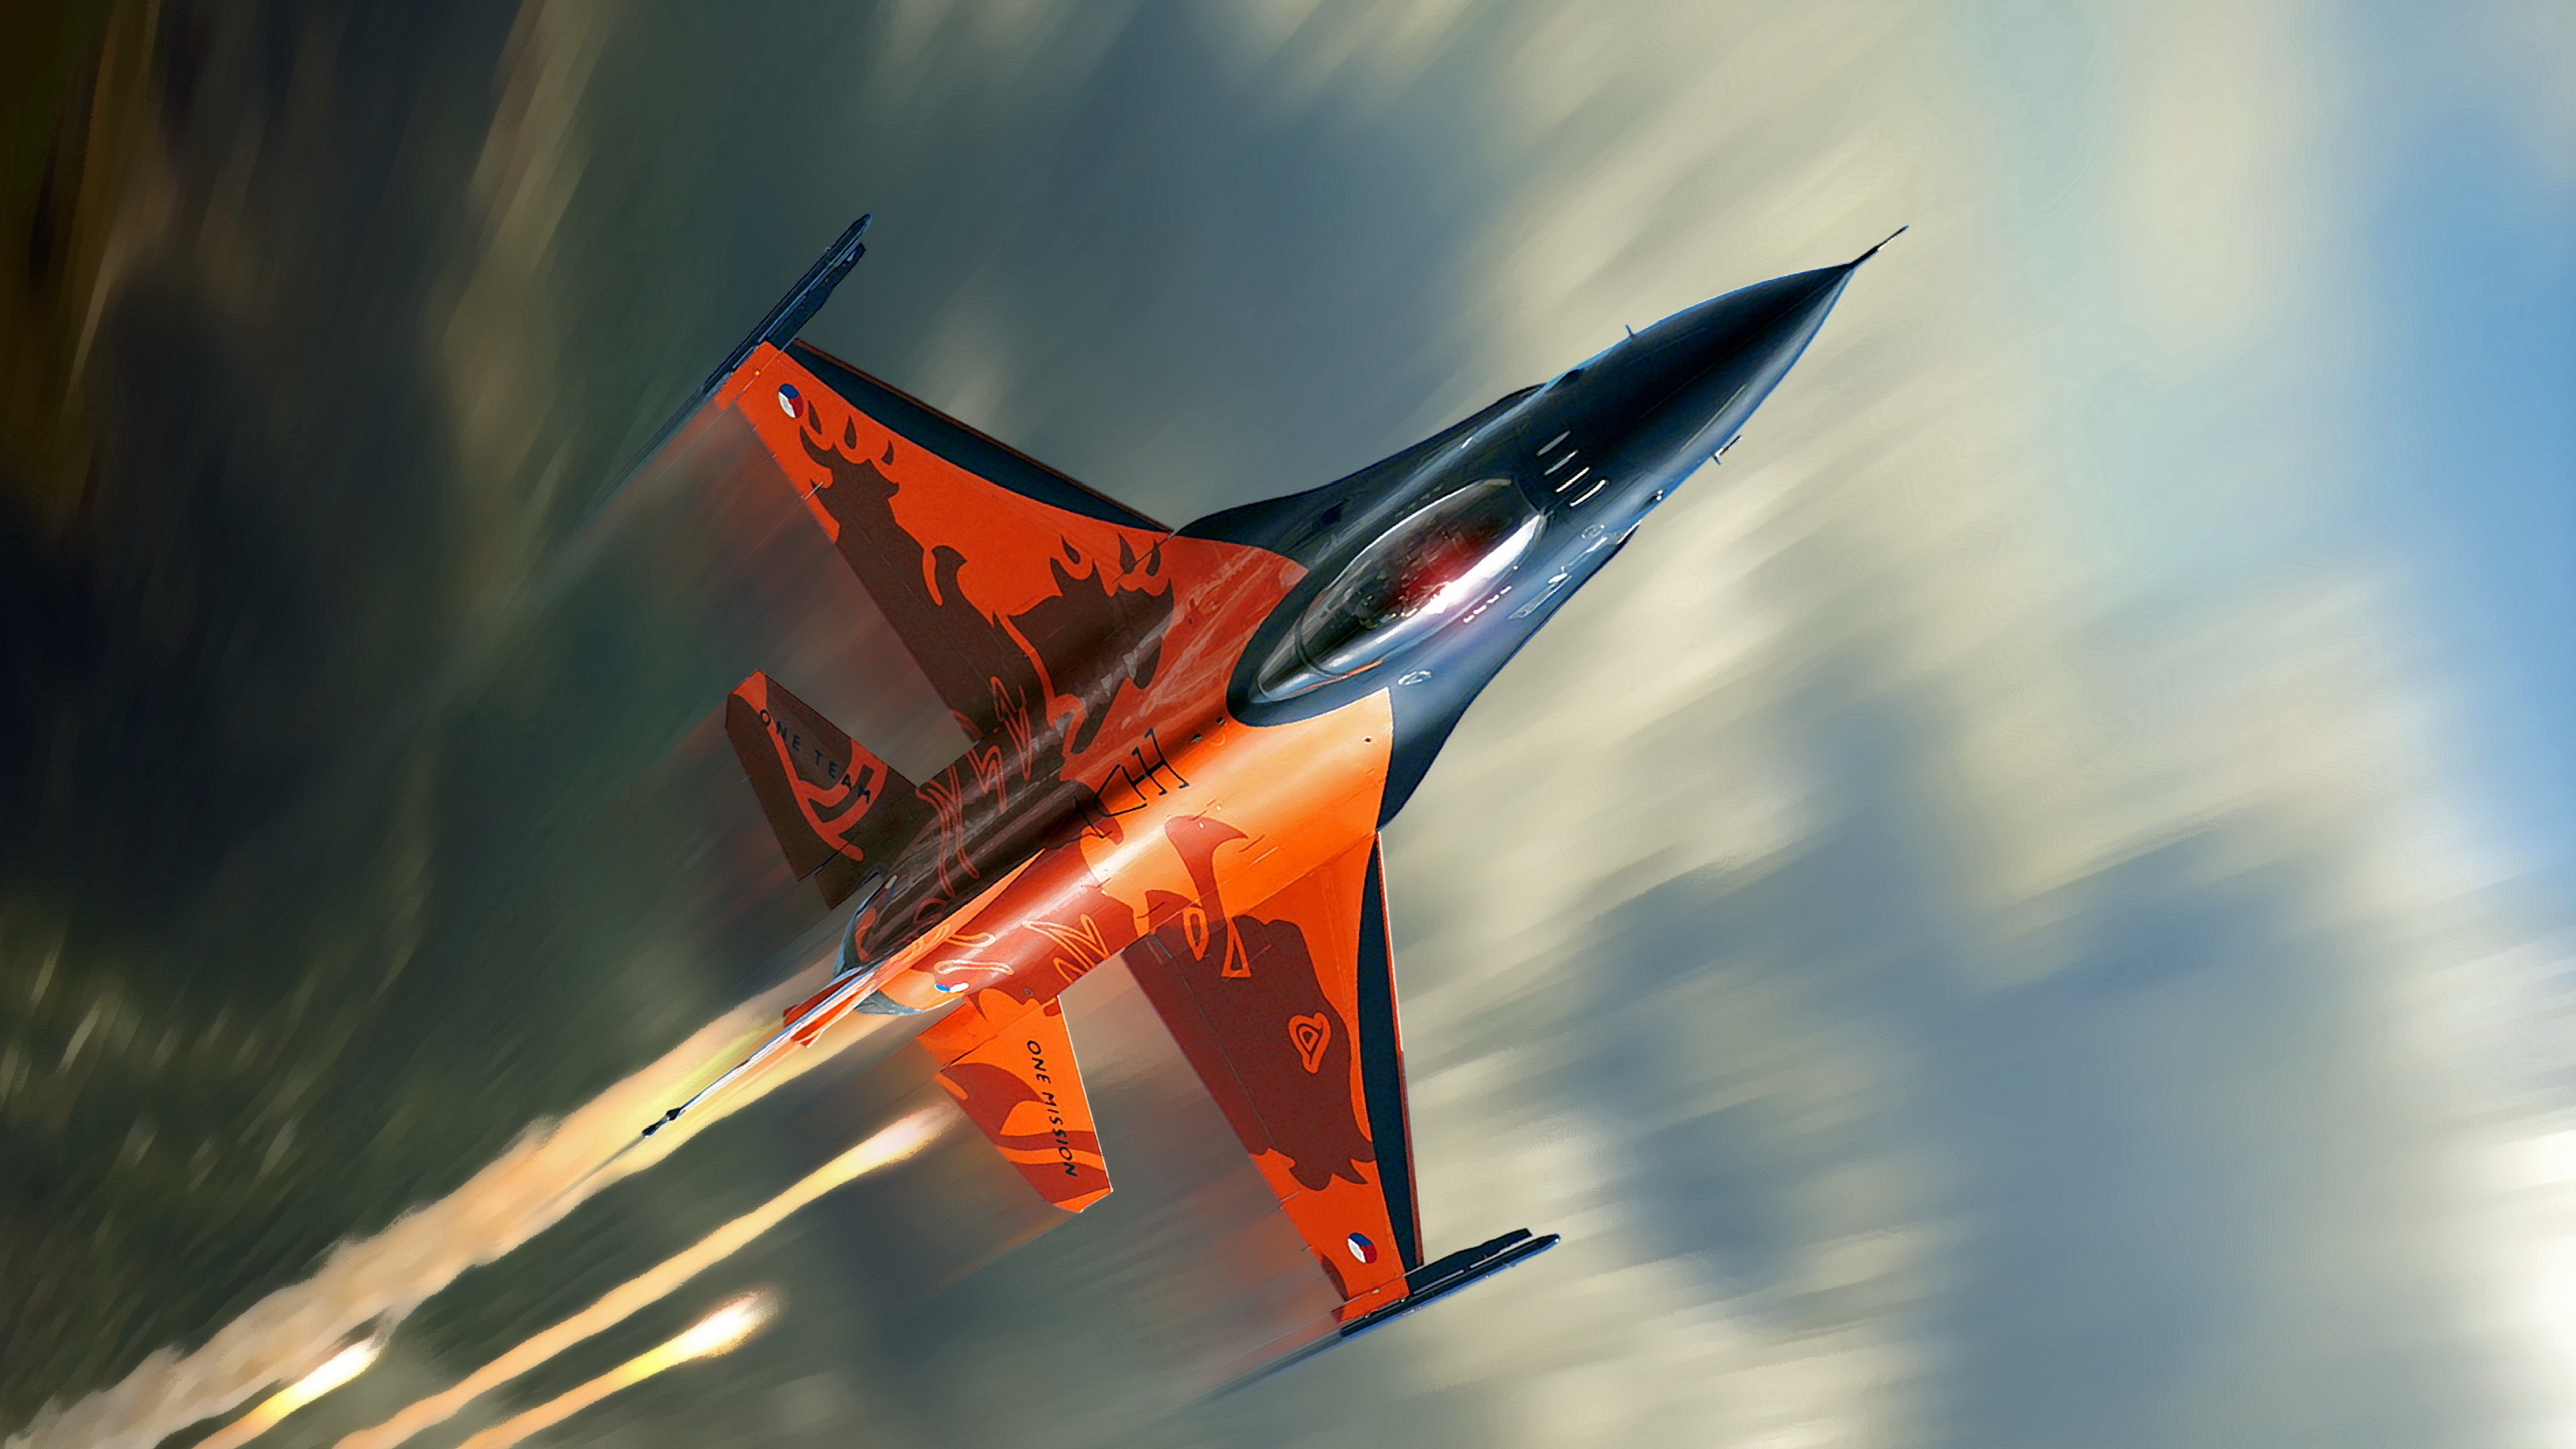 F 16 Falcon Fighter Jet Aircraft Us Air Force Wallpaper Hd For 5120x2880